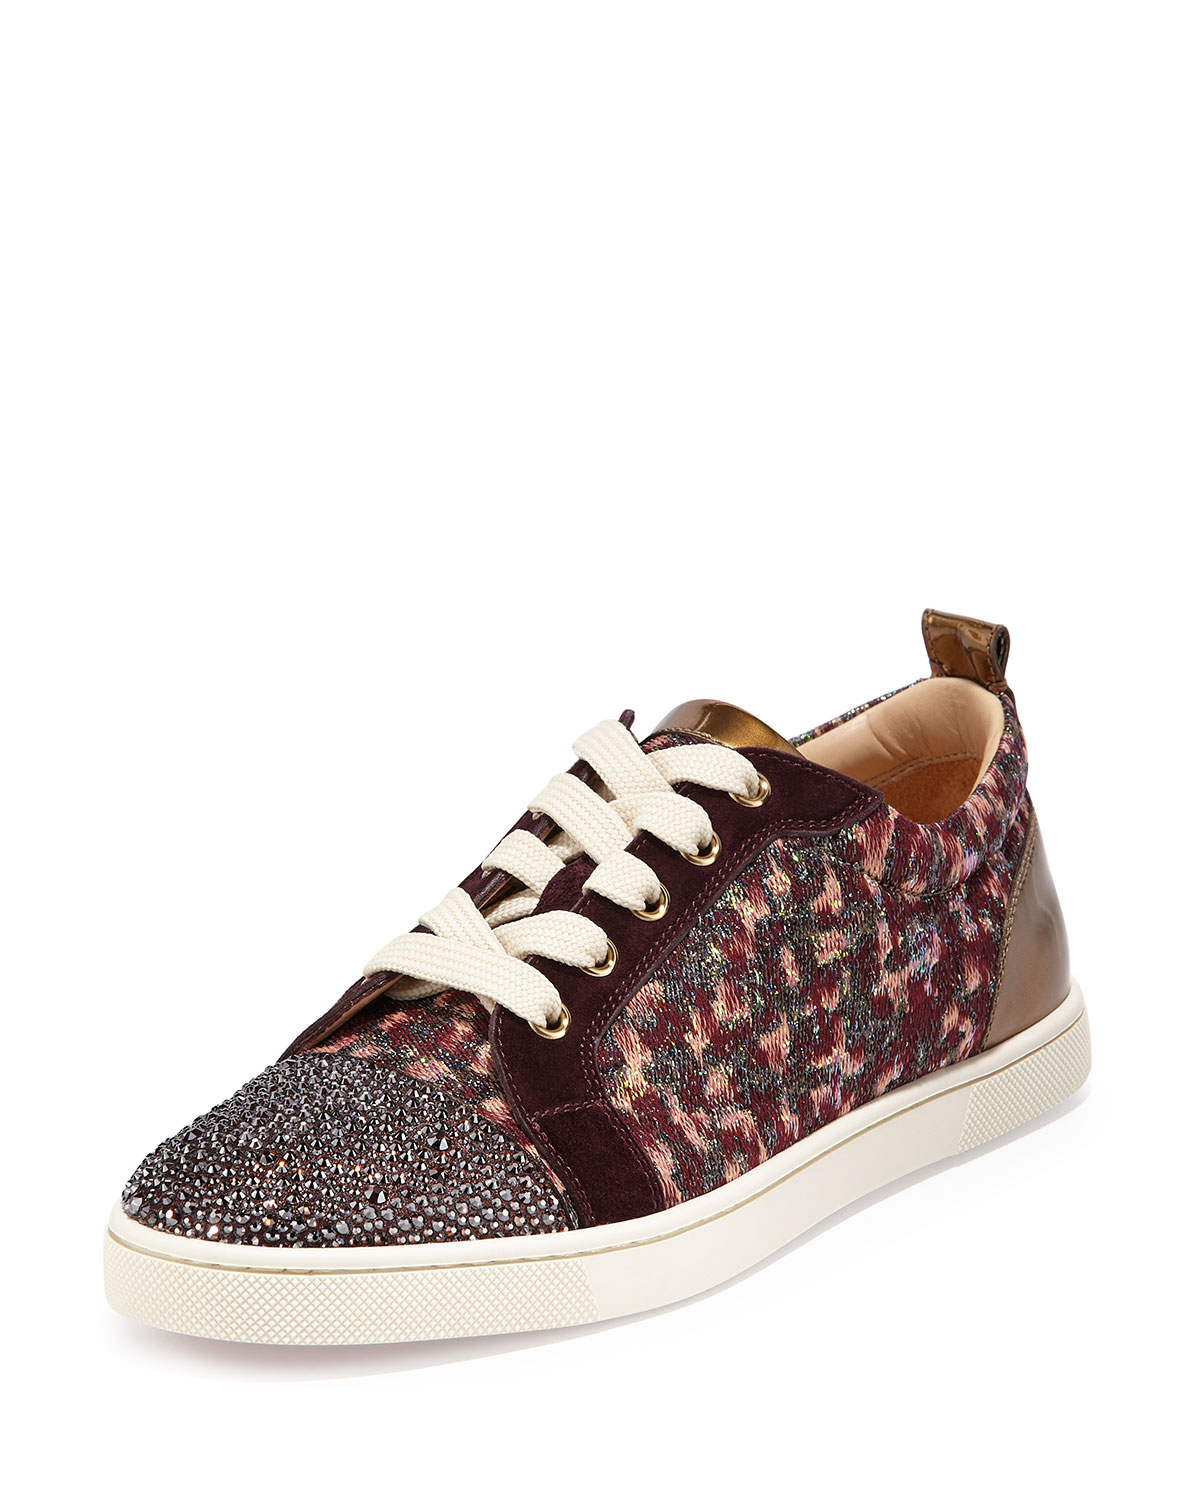 new style 0f363 48fca Gondola Strass Low-Top Sneaker, Burgundy